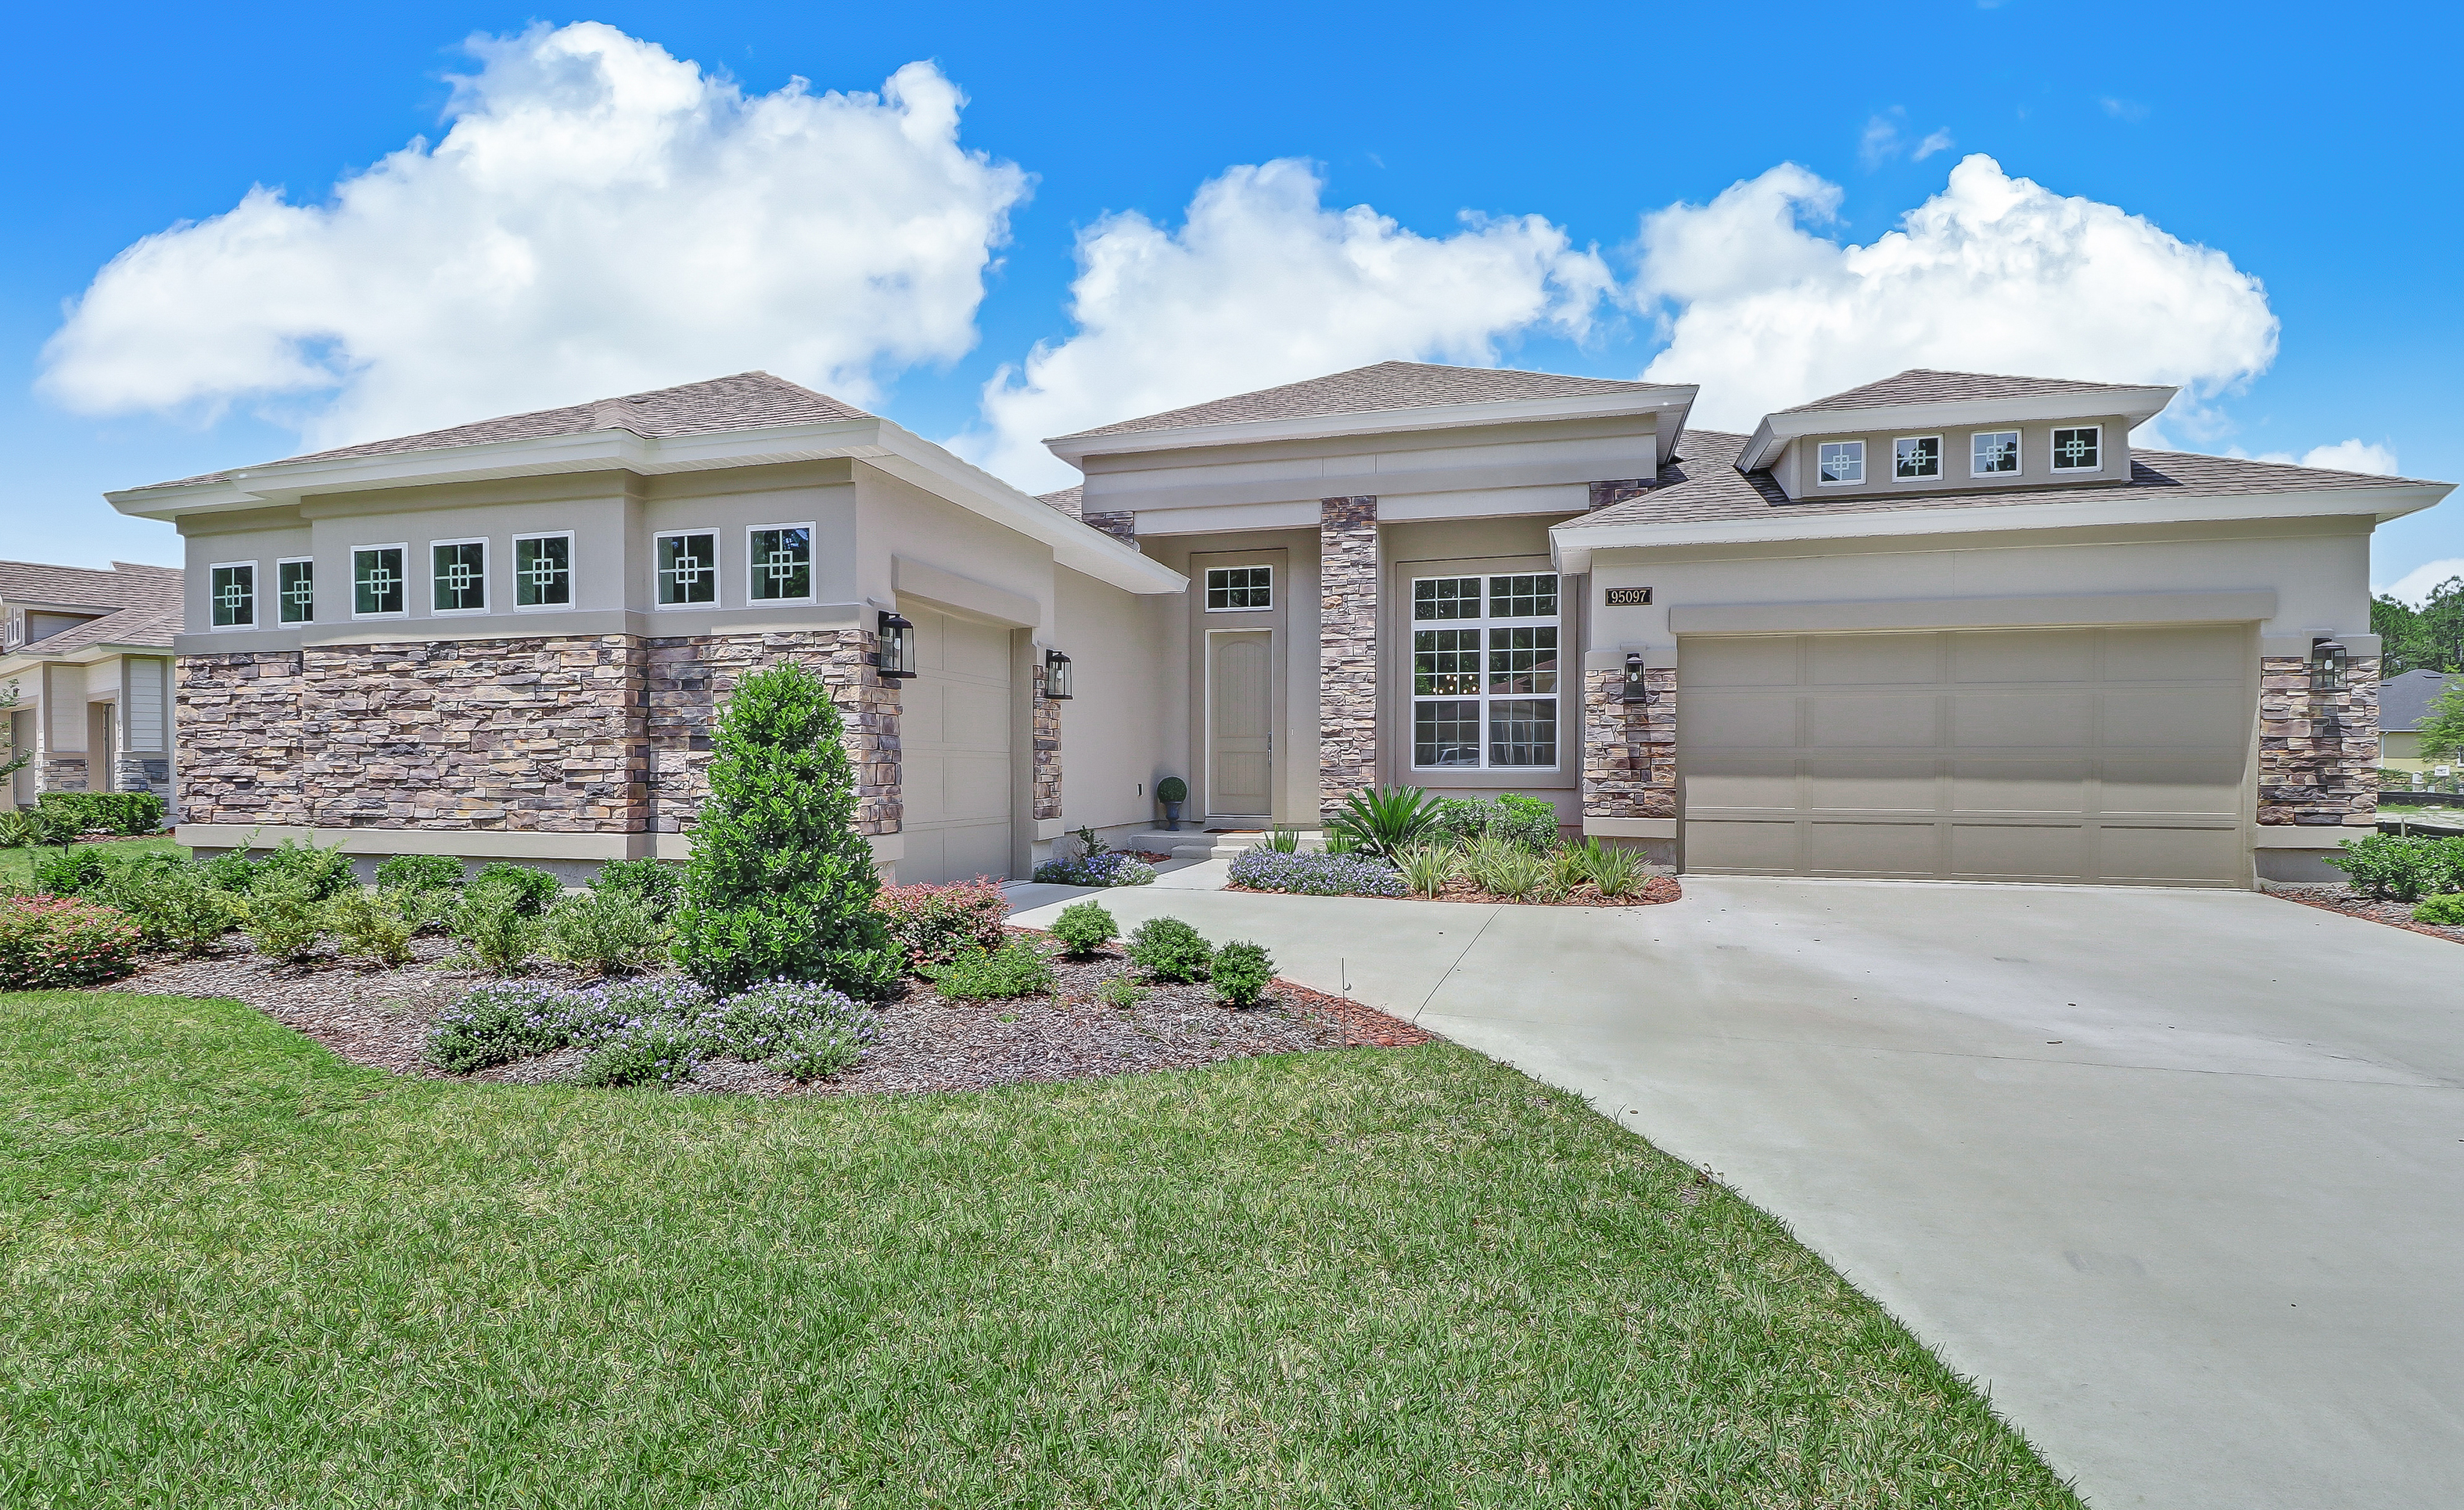 95097 Sweetberry Way, Fernandina Beach FL 32034